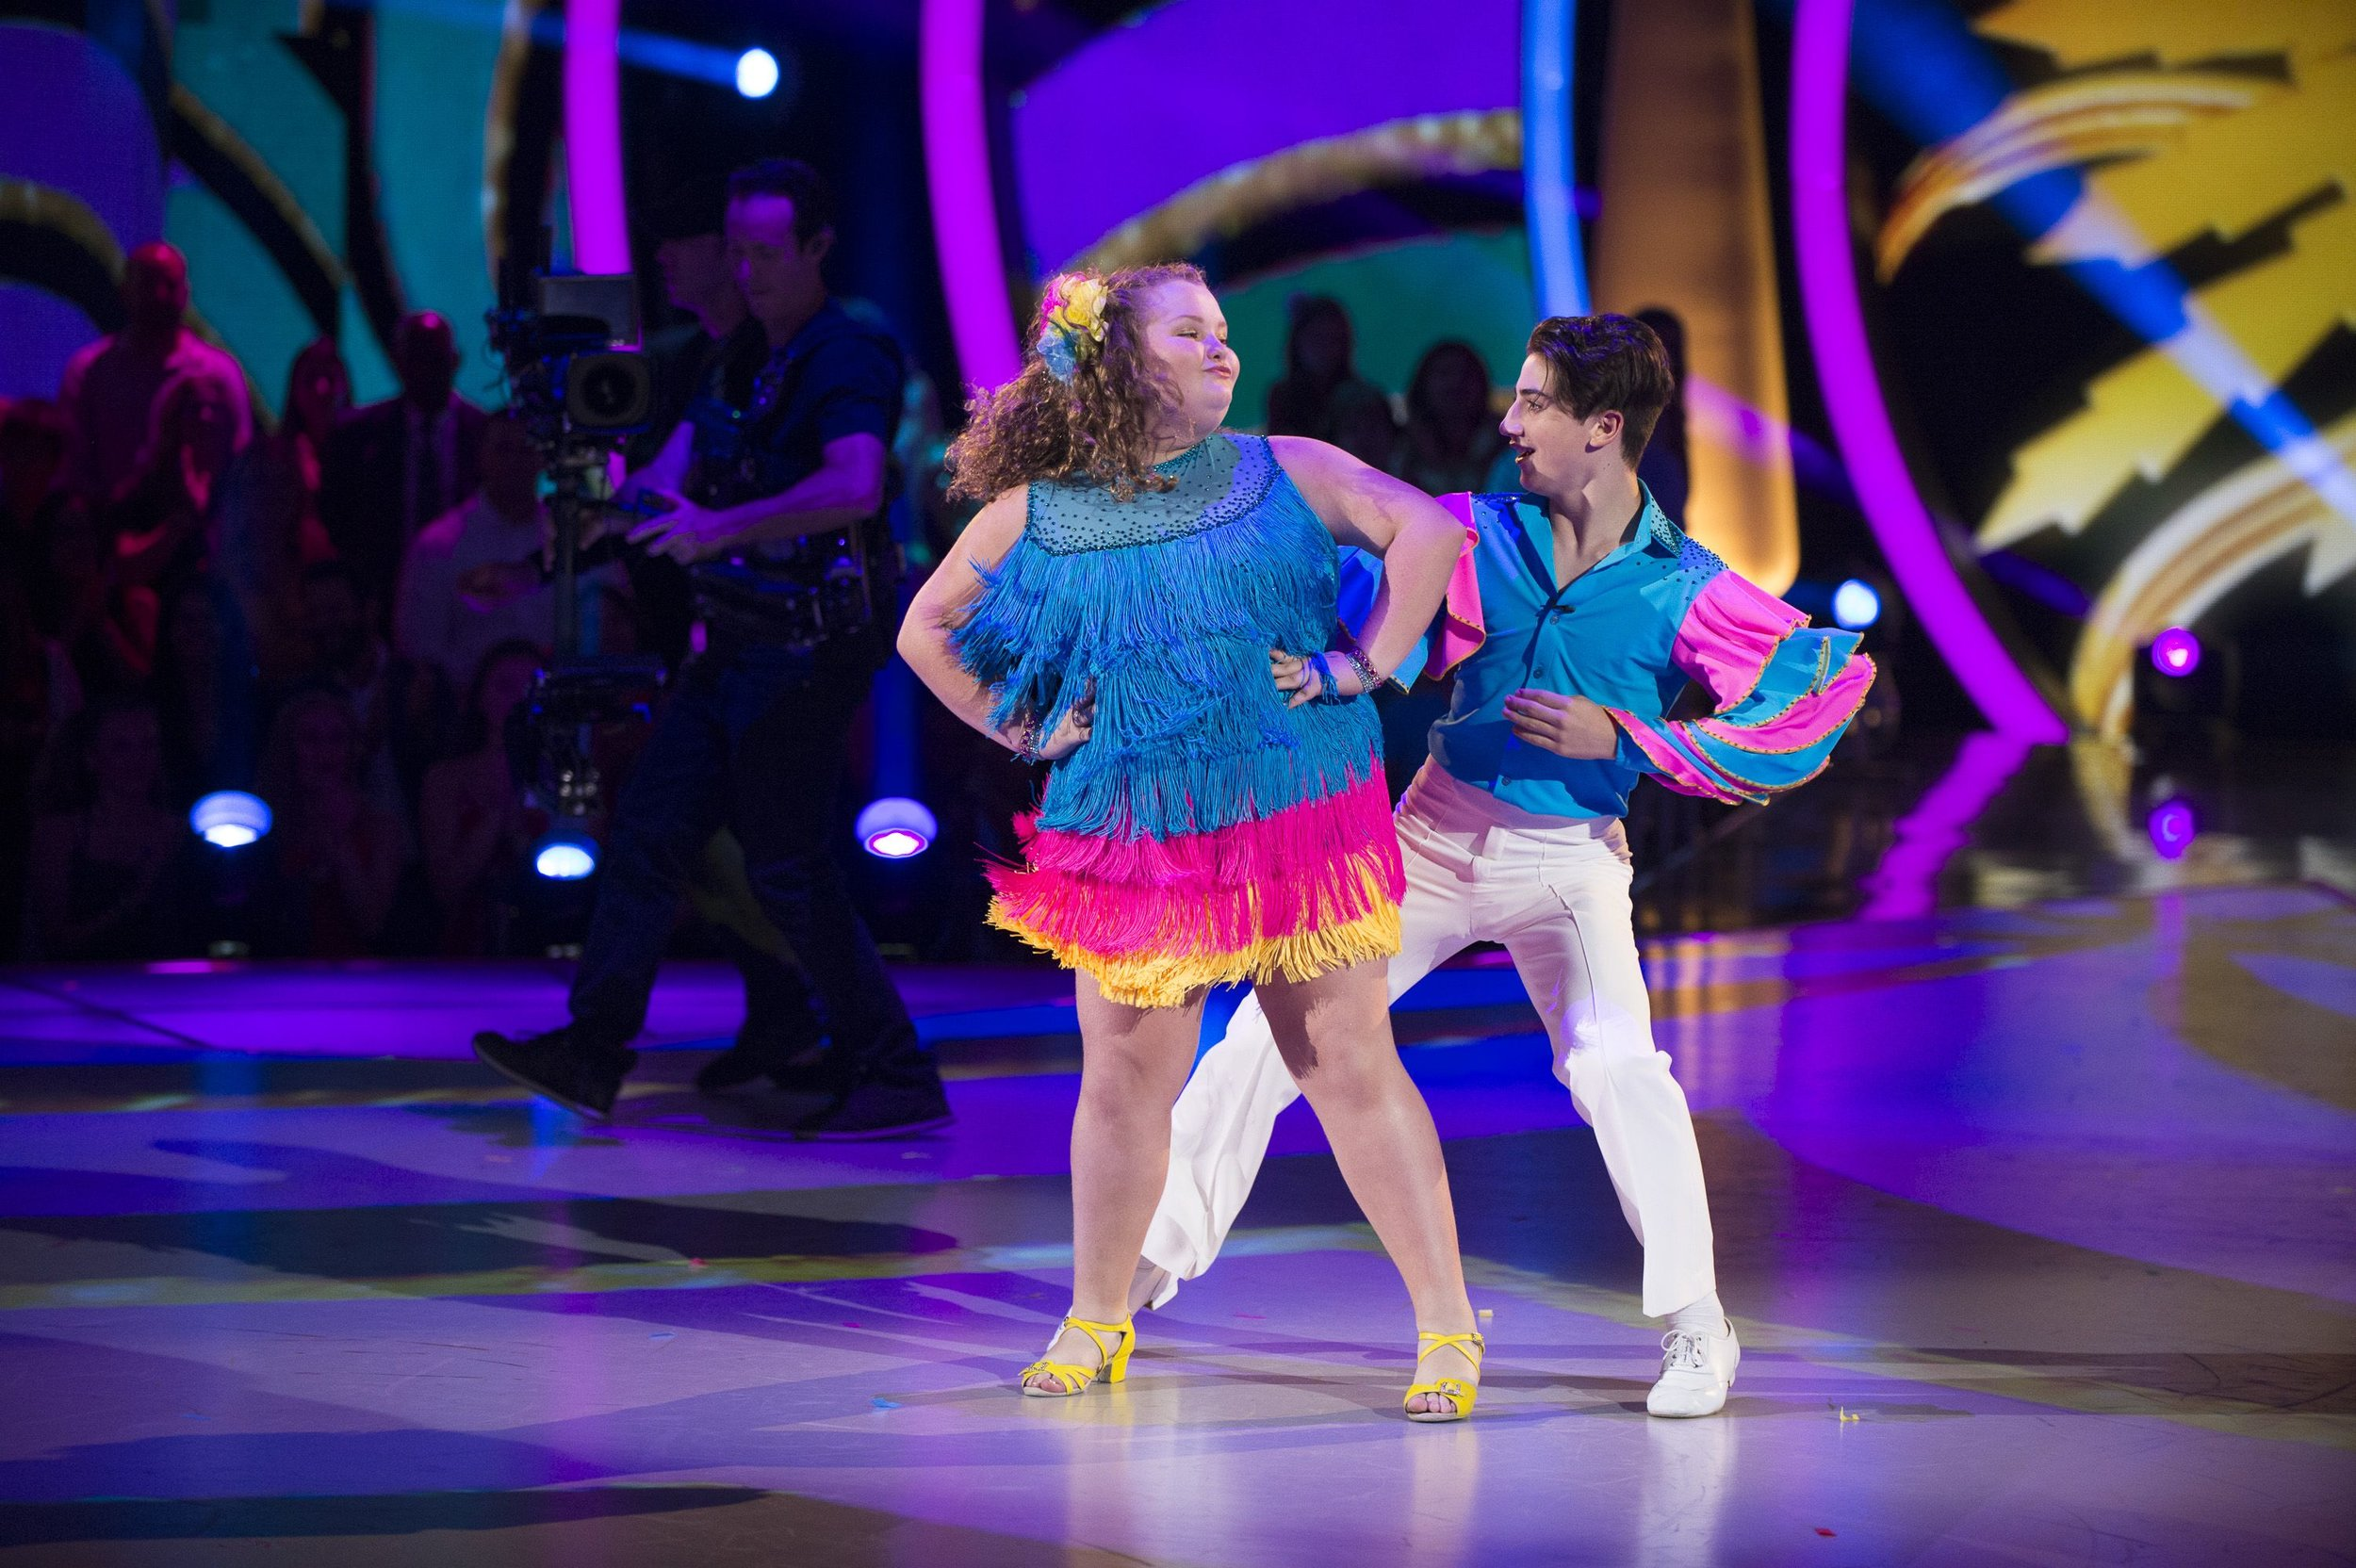 dancing-with-the-stars-juniors-cast-photos-1538503415.jpg